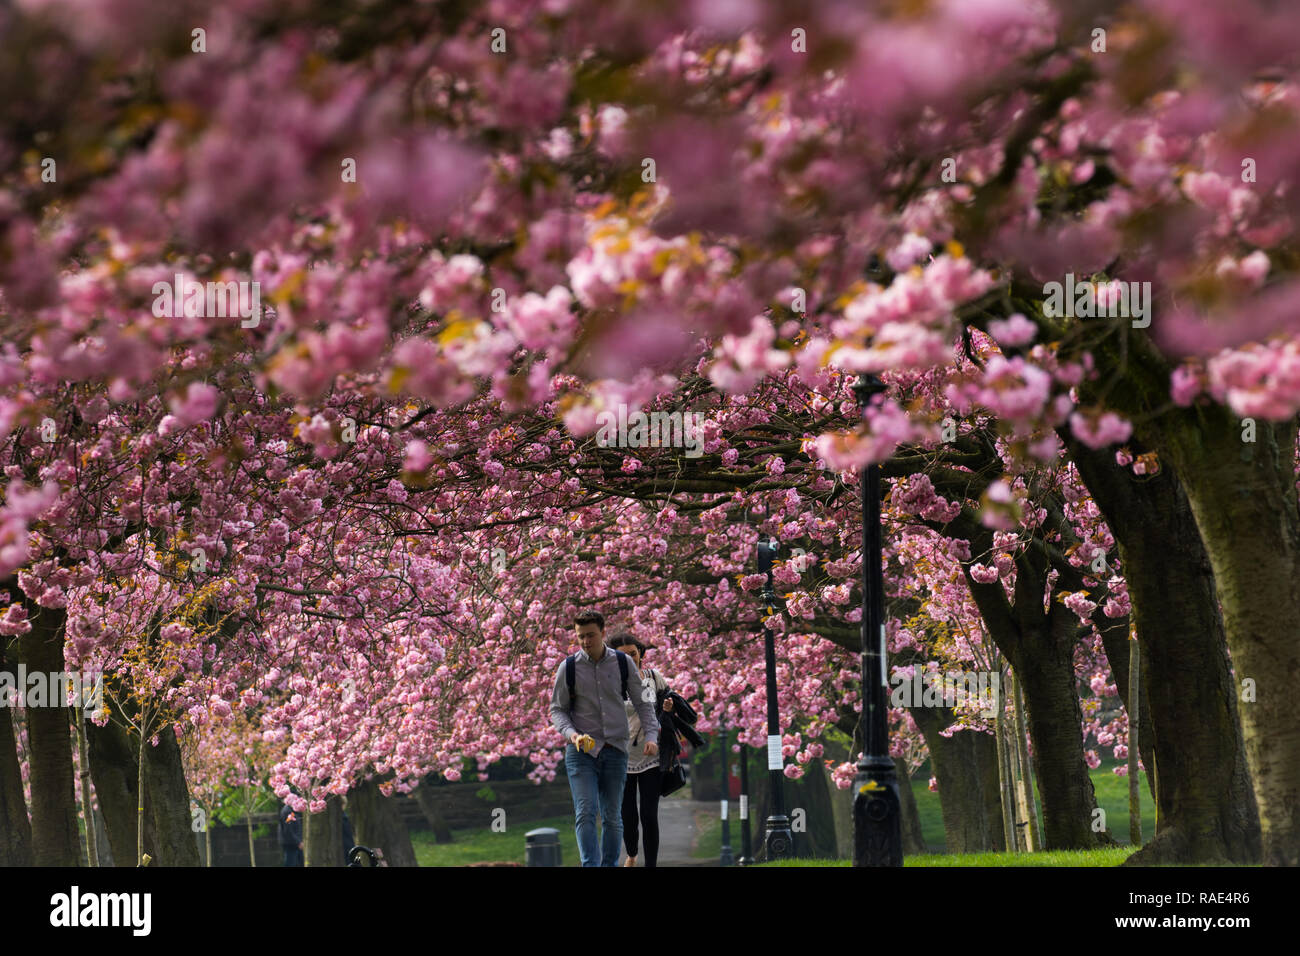 Two people walking underneath a canopy of pink Cherry Blossom,Stray Rein,Harrogate,North Yorkshire,England,UK. - Stock Image